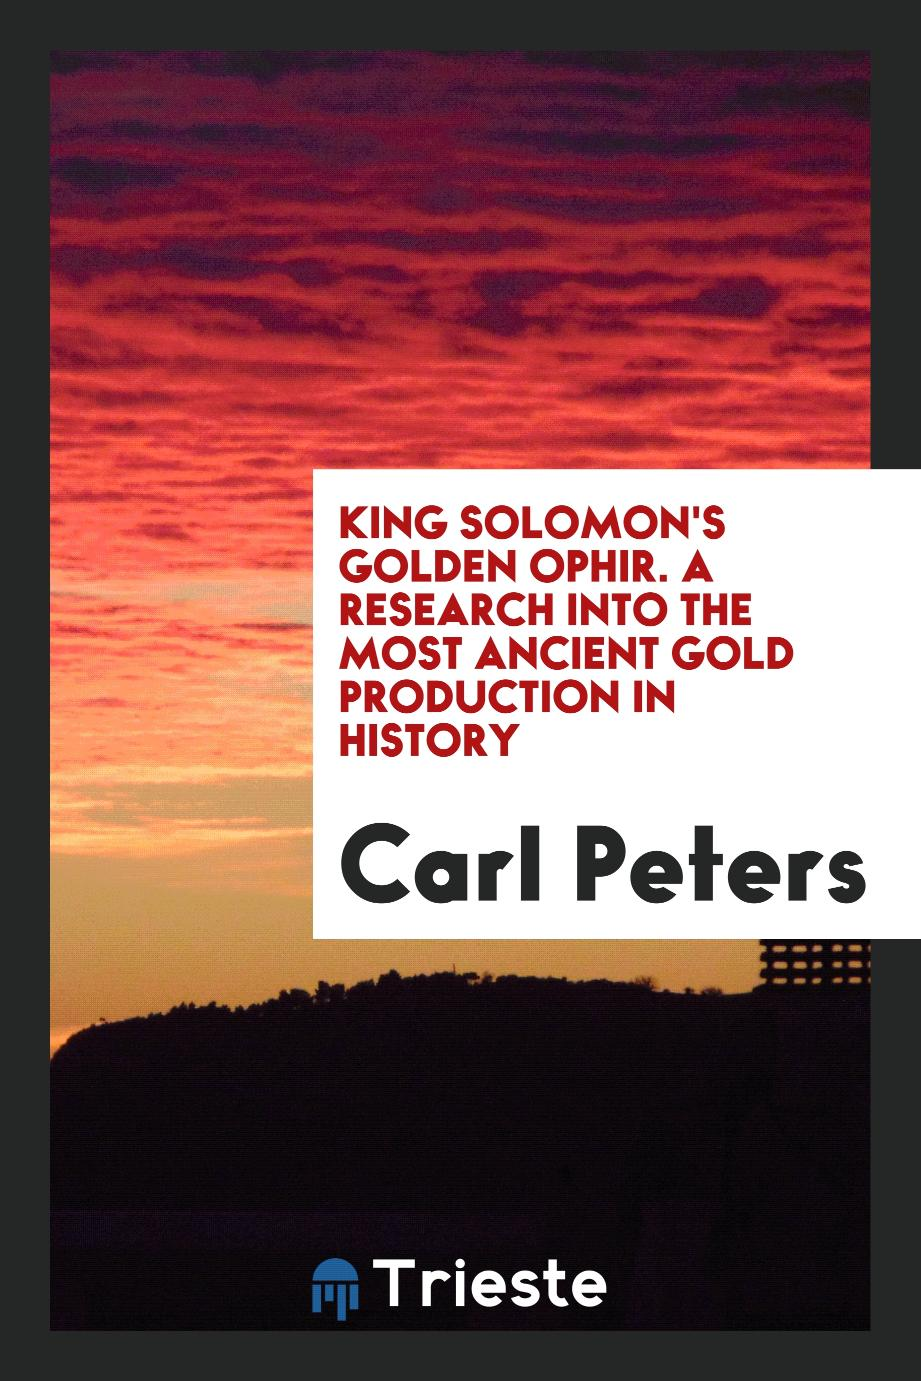 King Solomon's Golden Ophir. A Research into the Most Ancient Gold Production in History